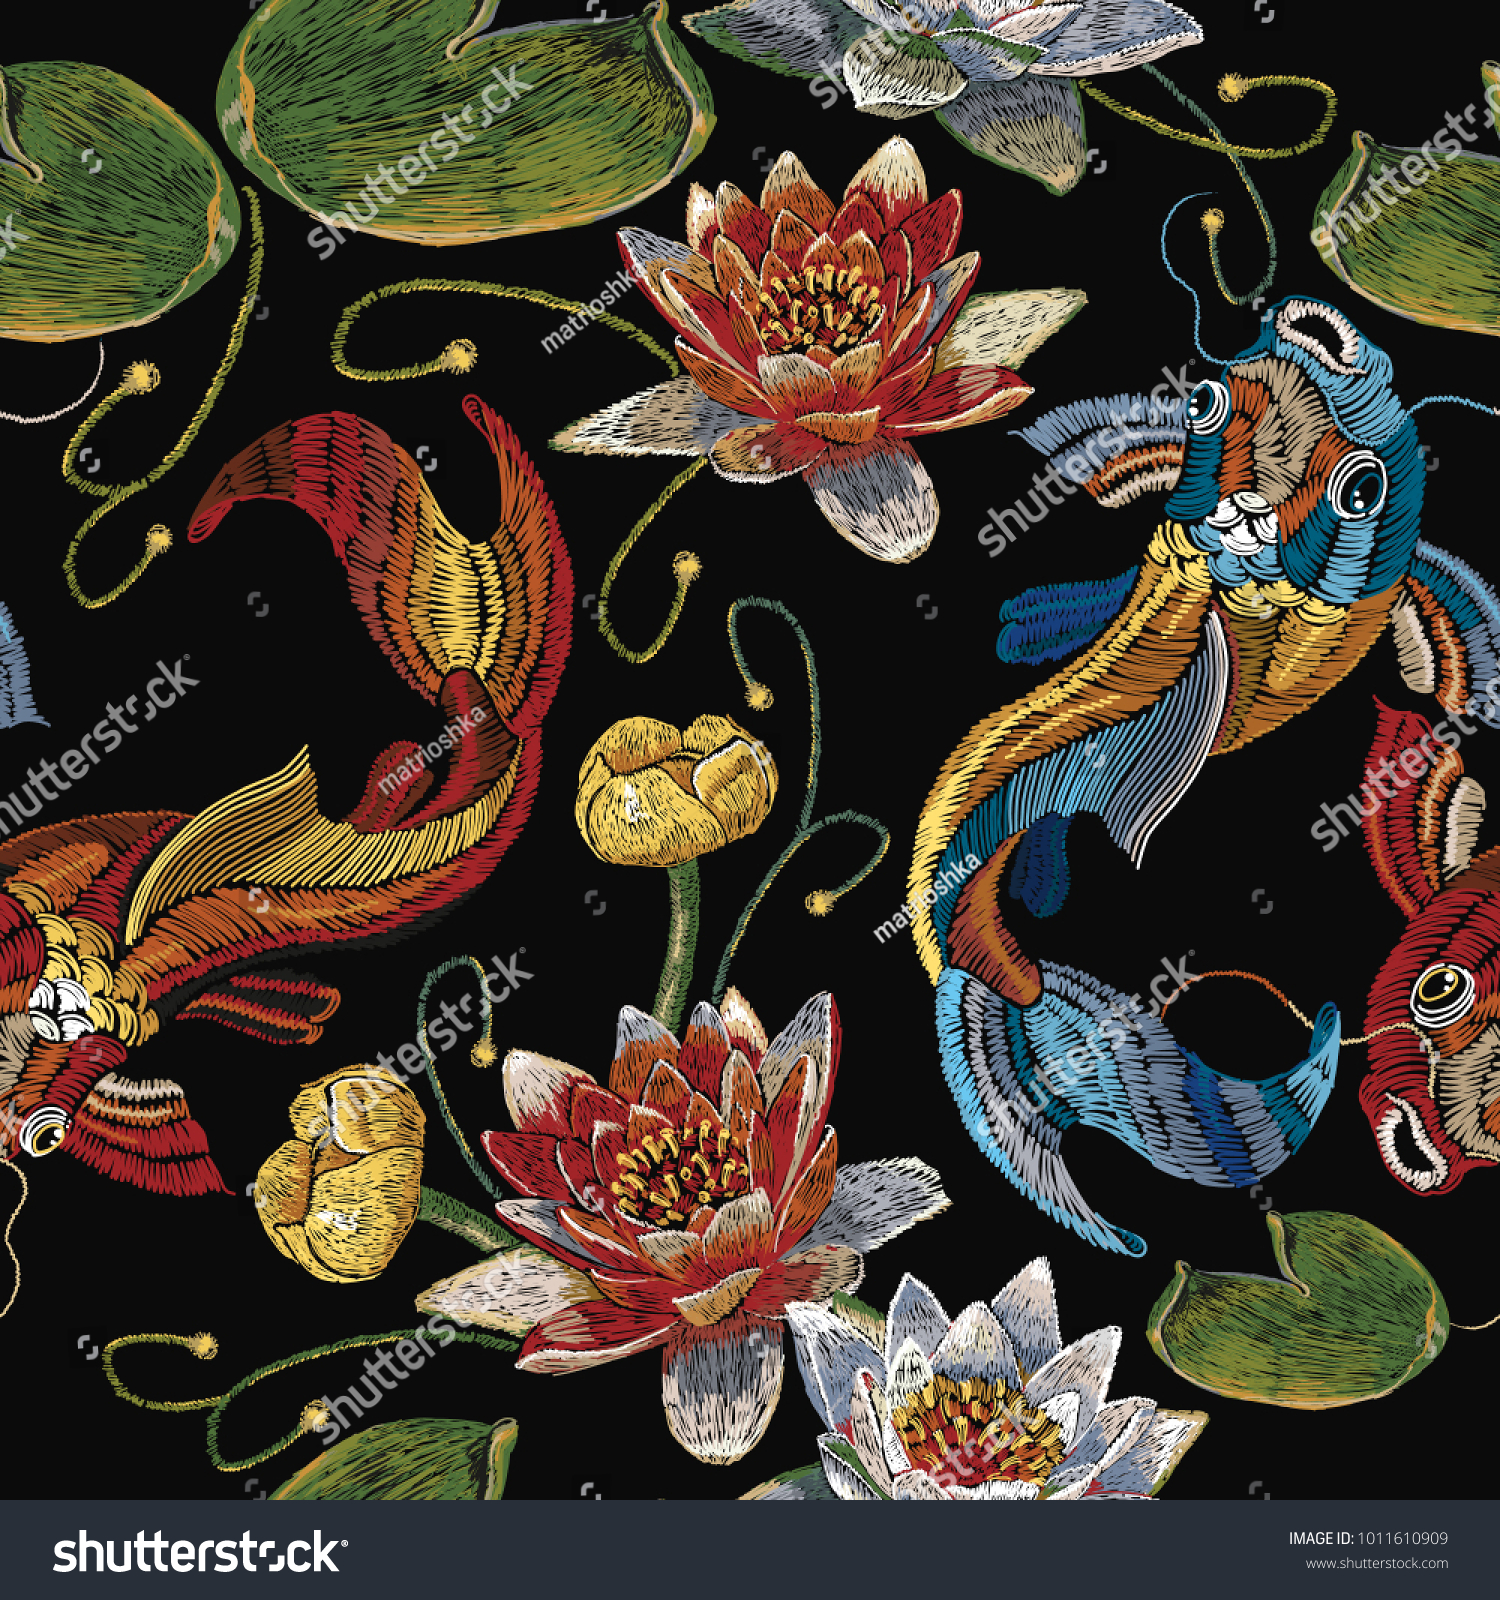 Embroidery koi fish and water lily seamless pattern japanese pattern classical embroidery koi carp